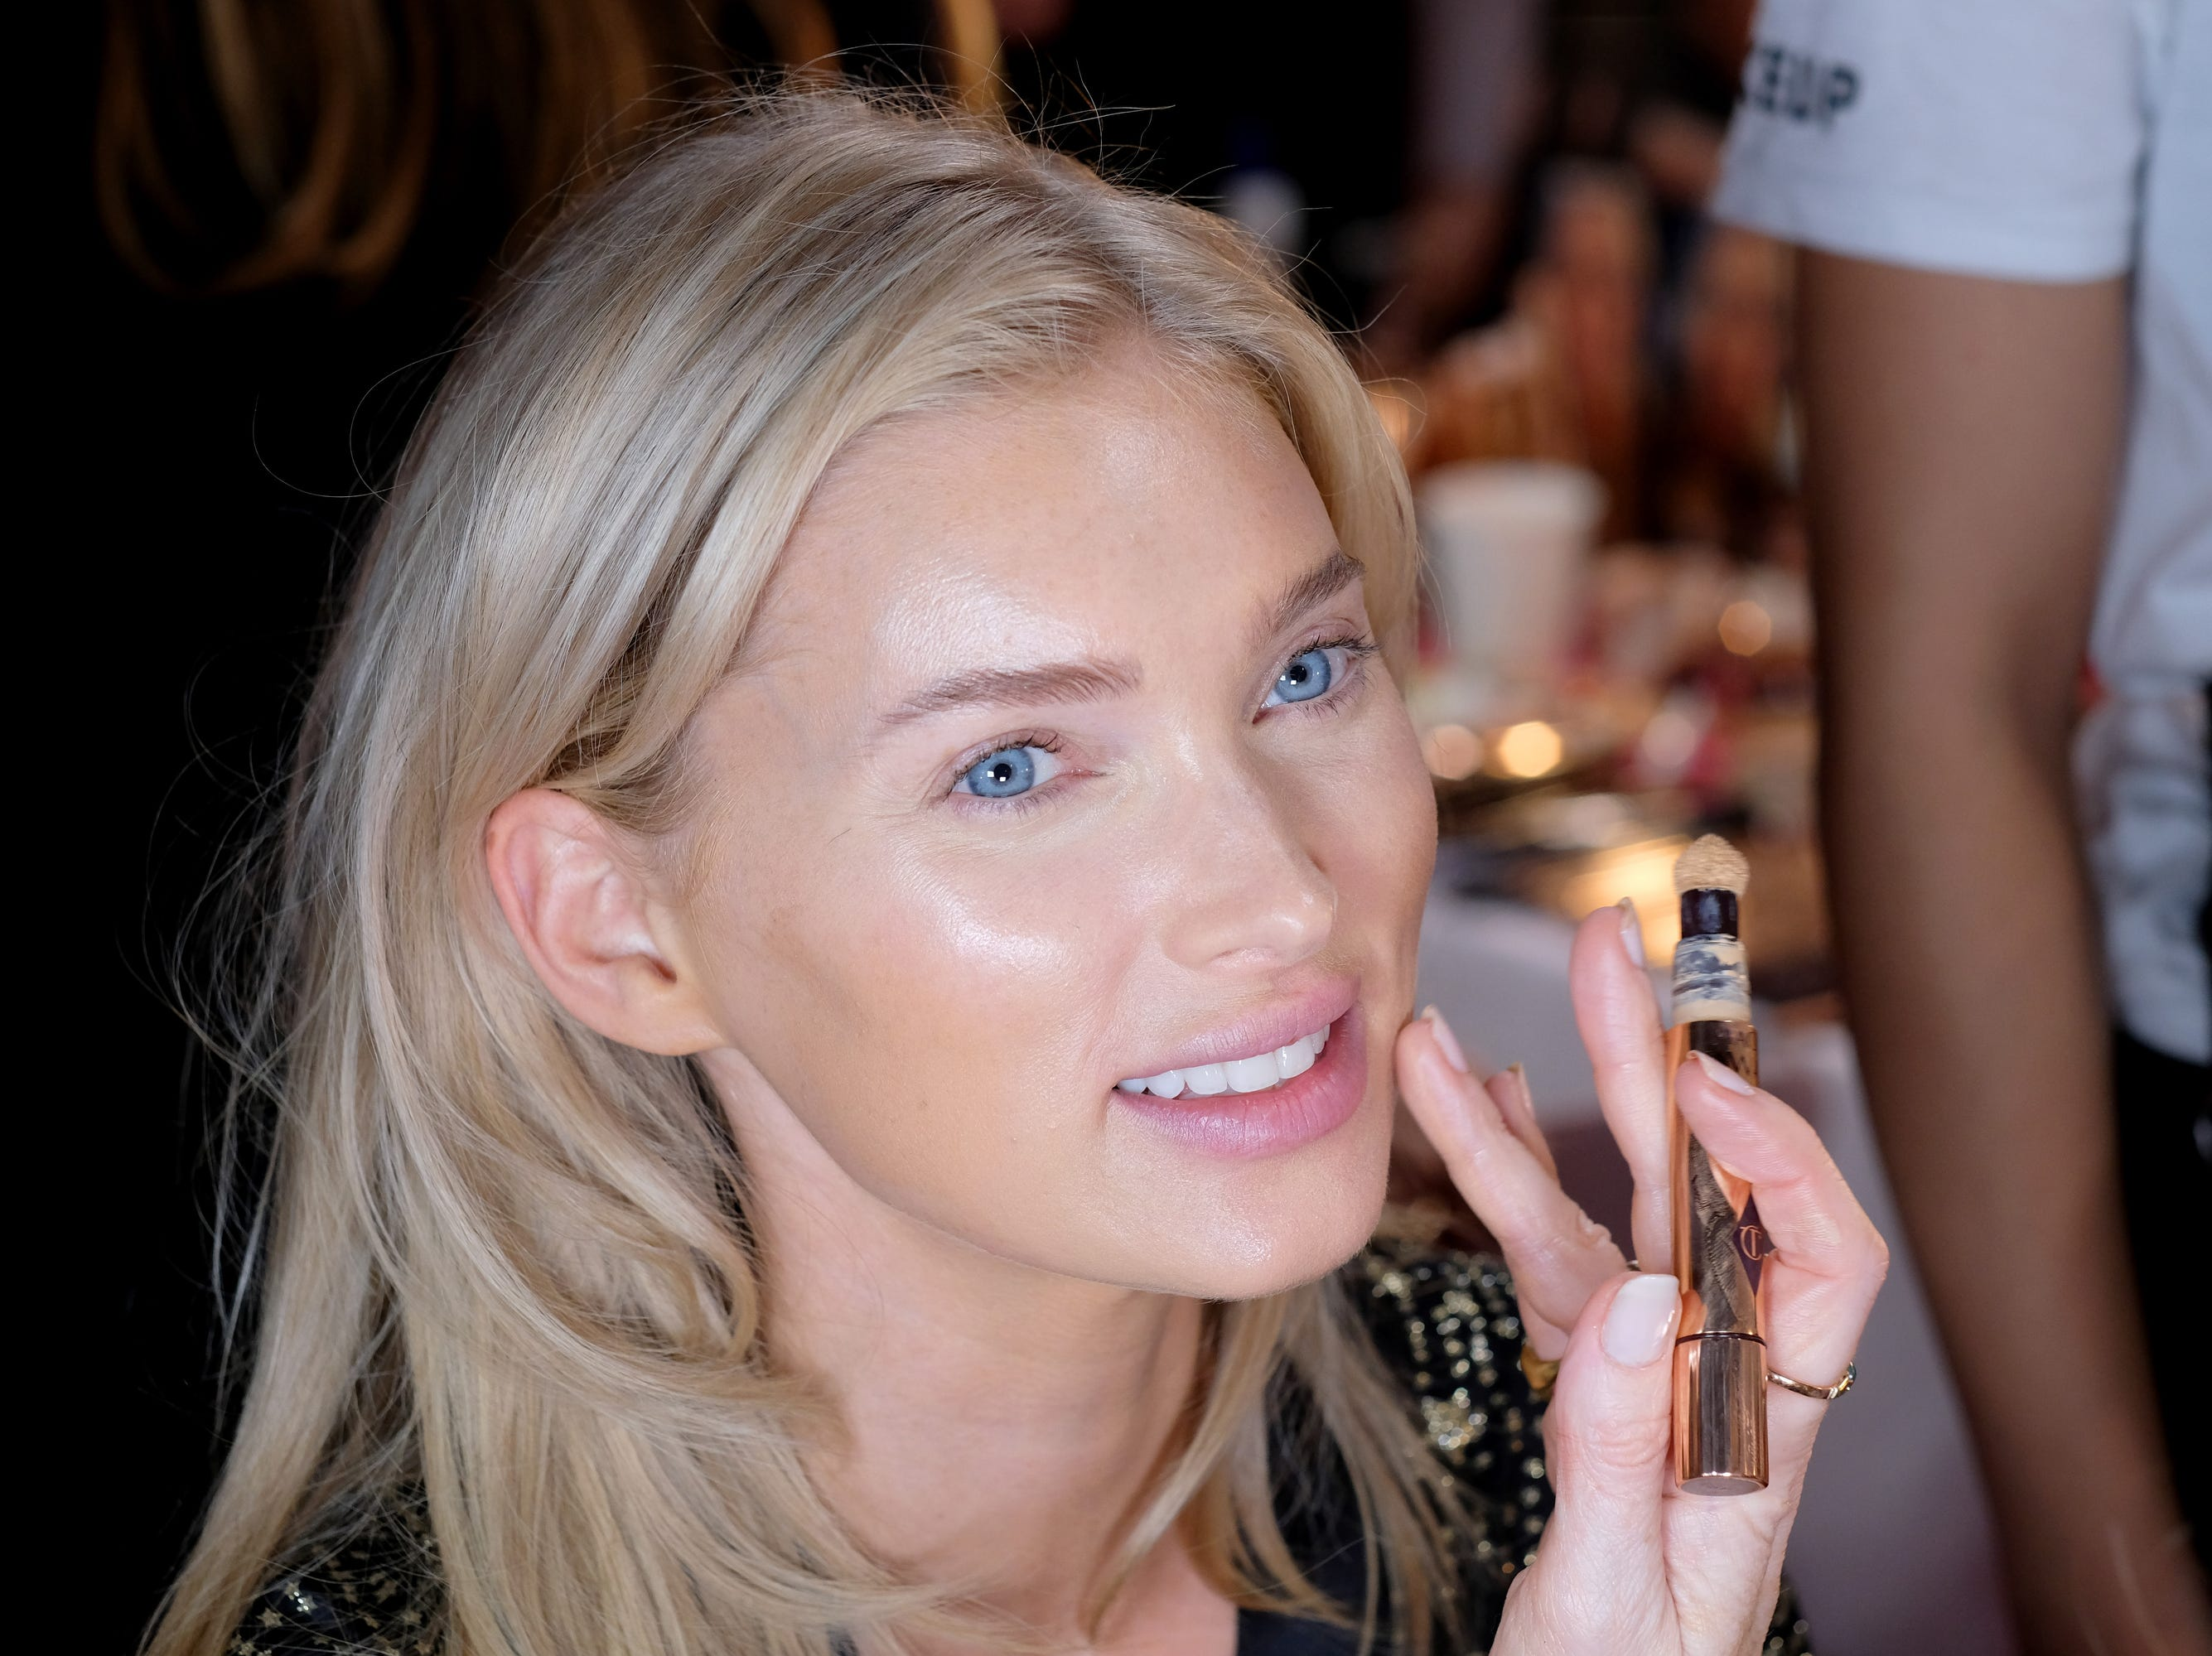 Elsa Hosk's has her makeup applied  backstage.